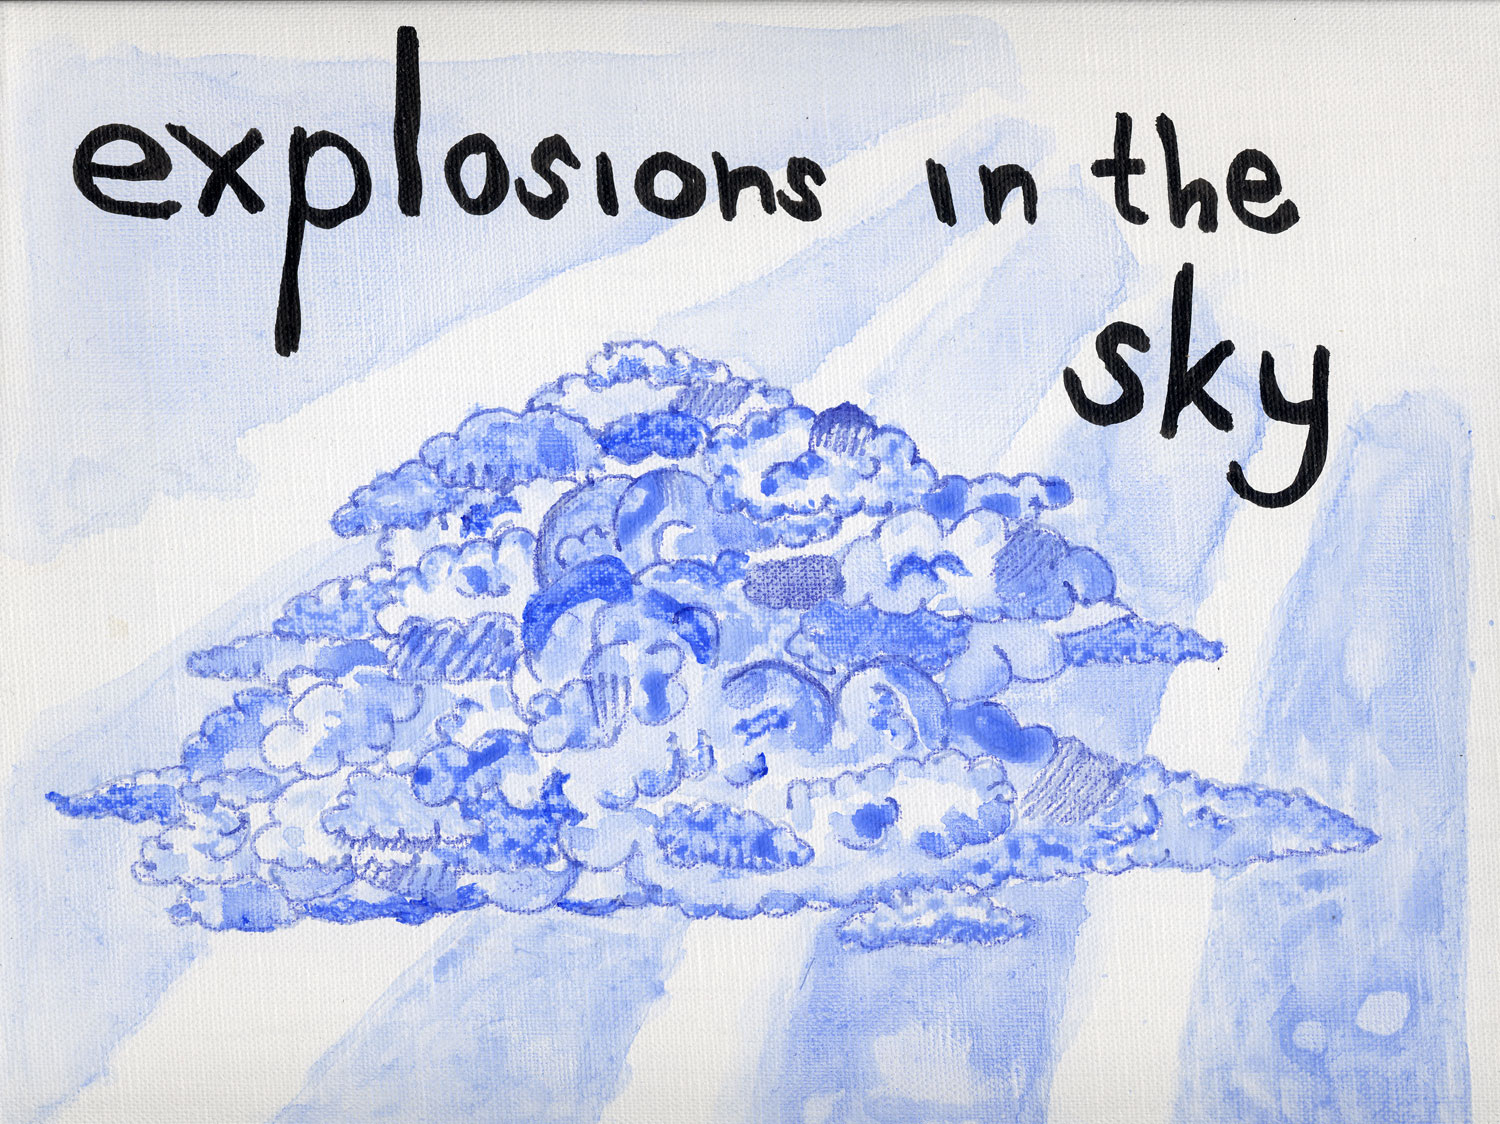 Explosions in the sky (Post Rock)